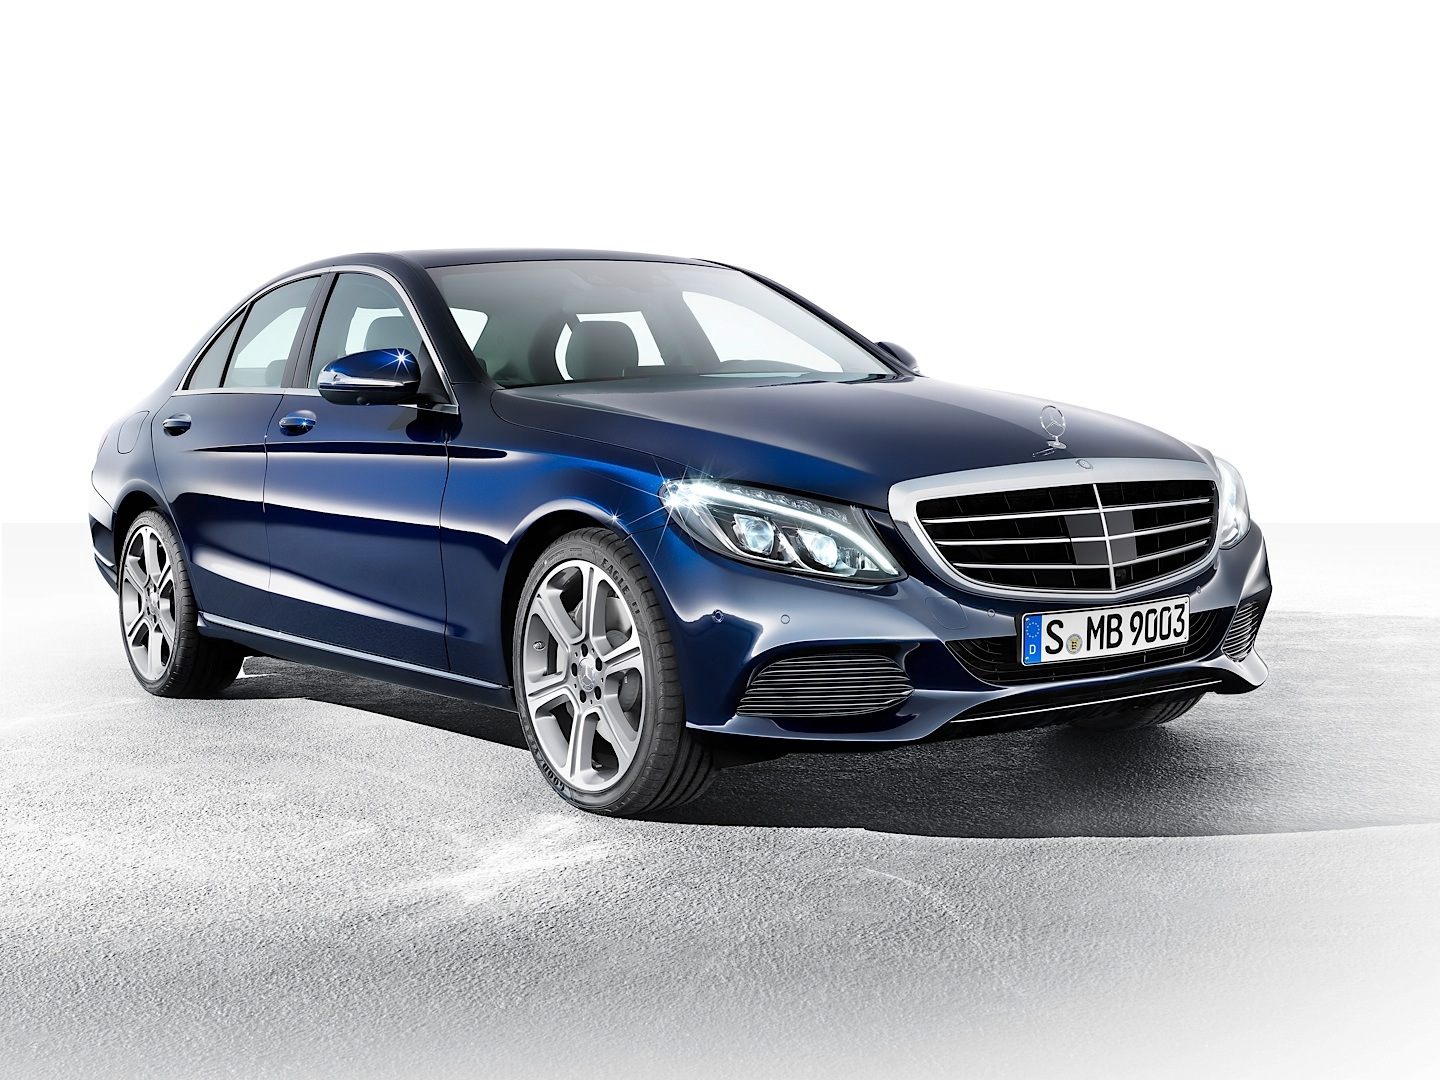 check-out-the-first-official-footage-with-the-new-c-class-w205-video-1080p-9